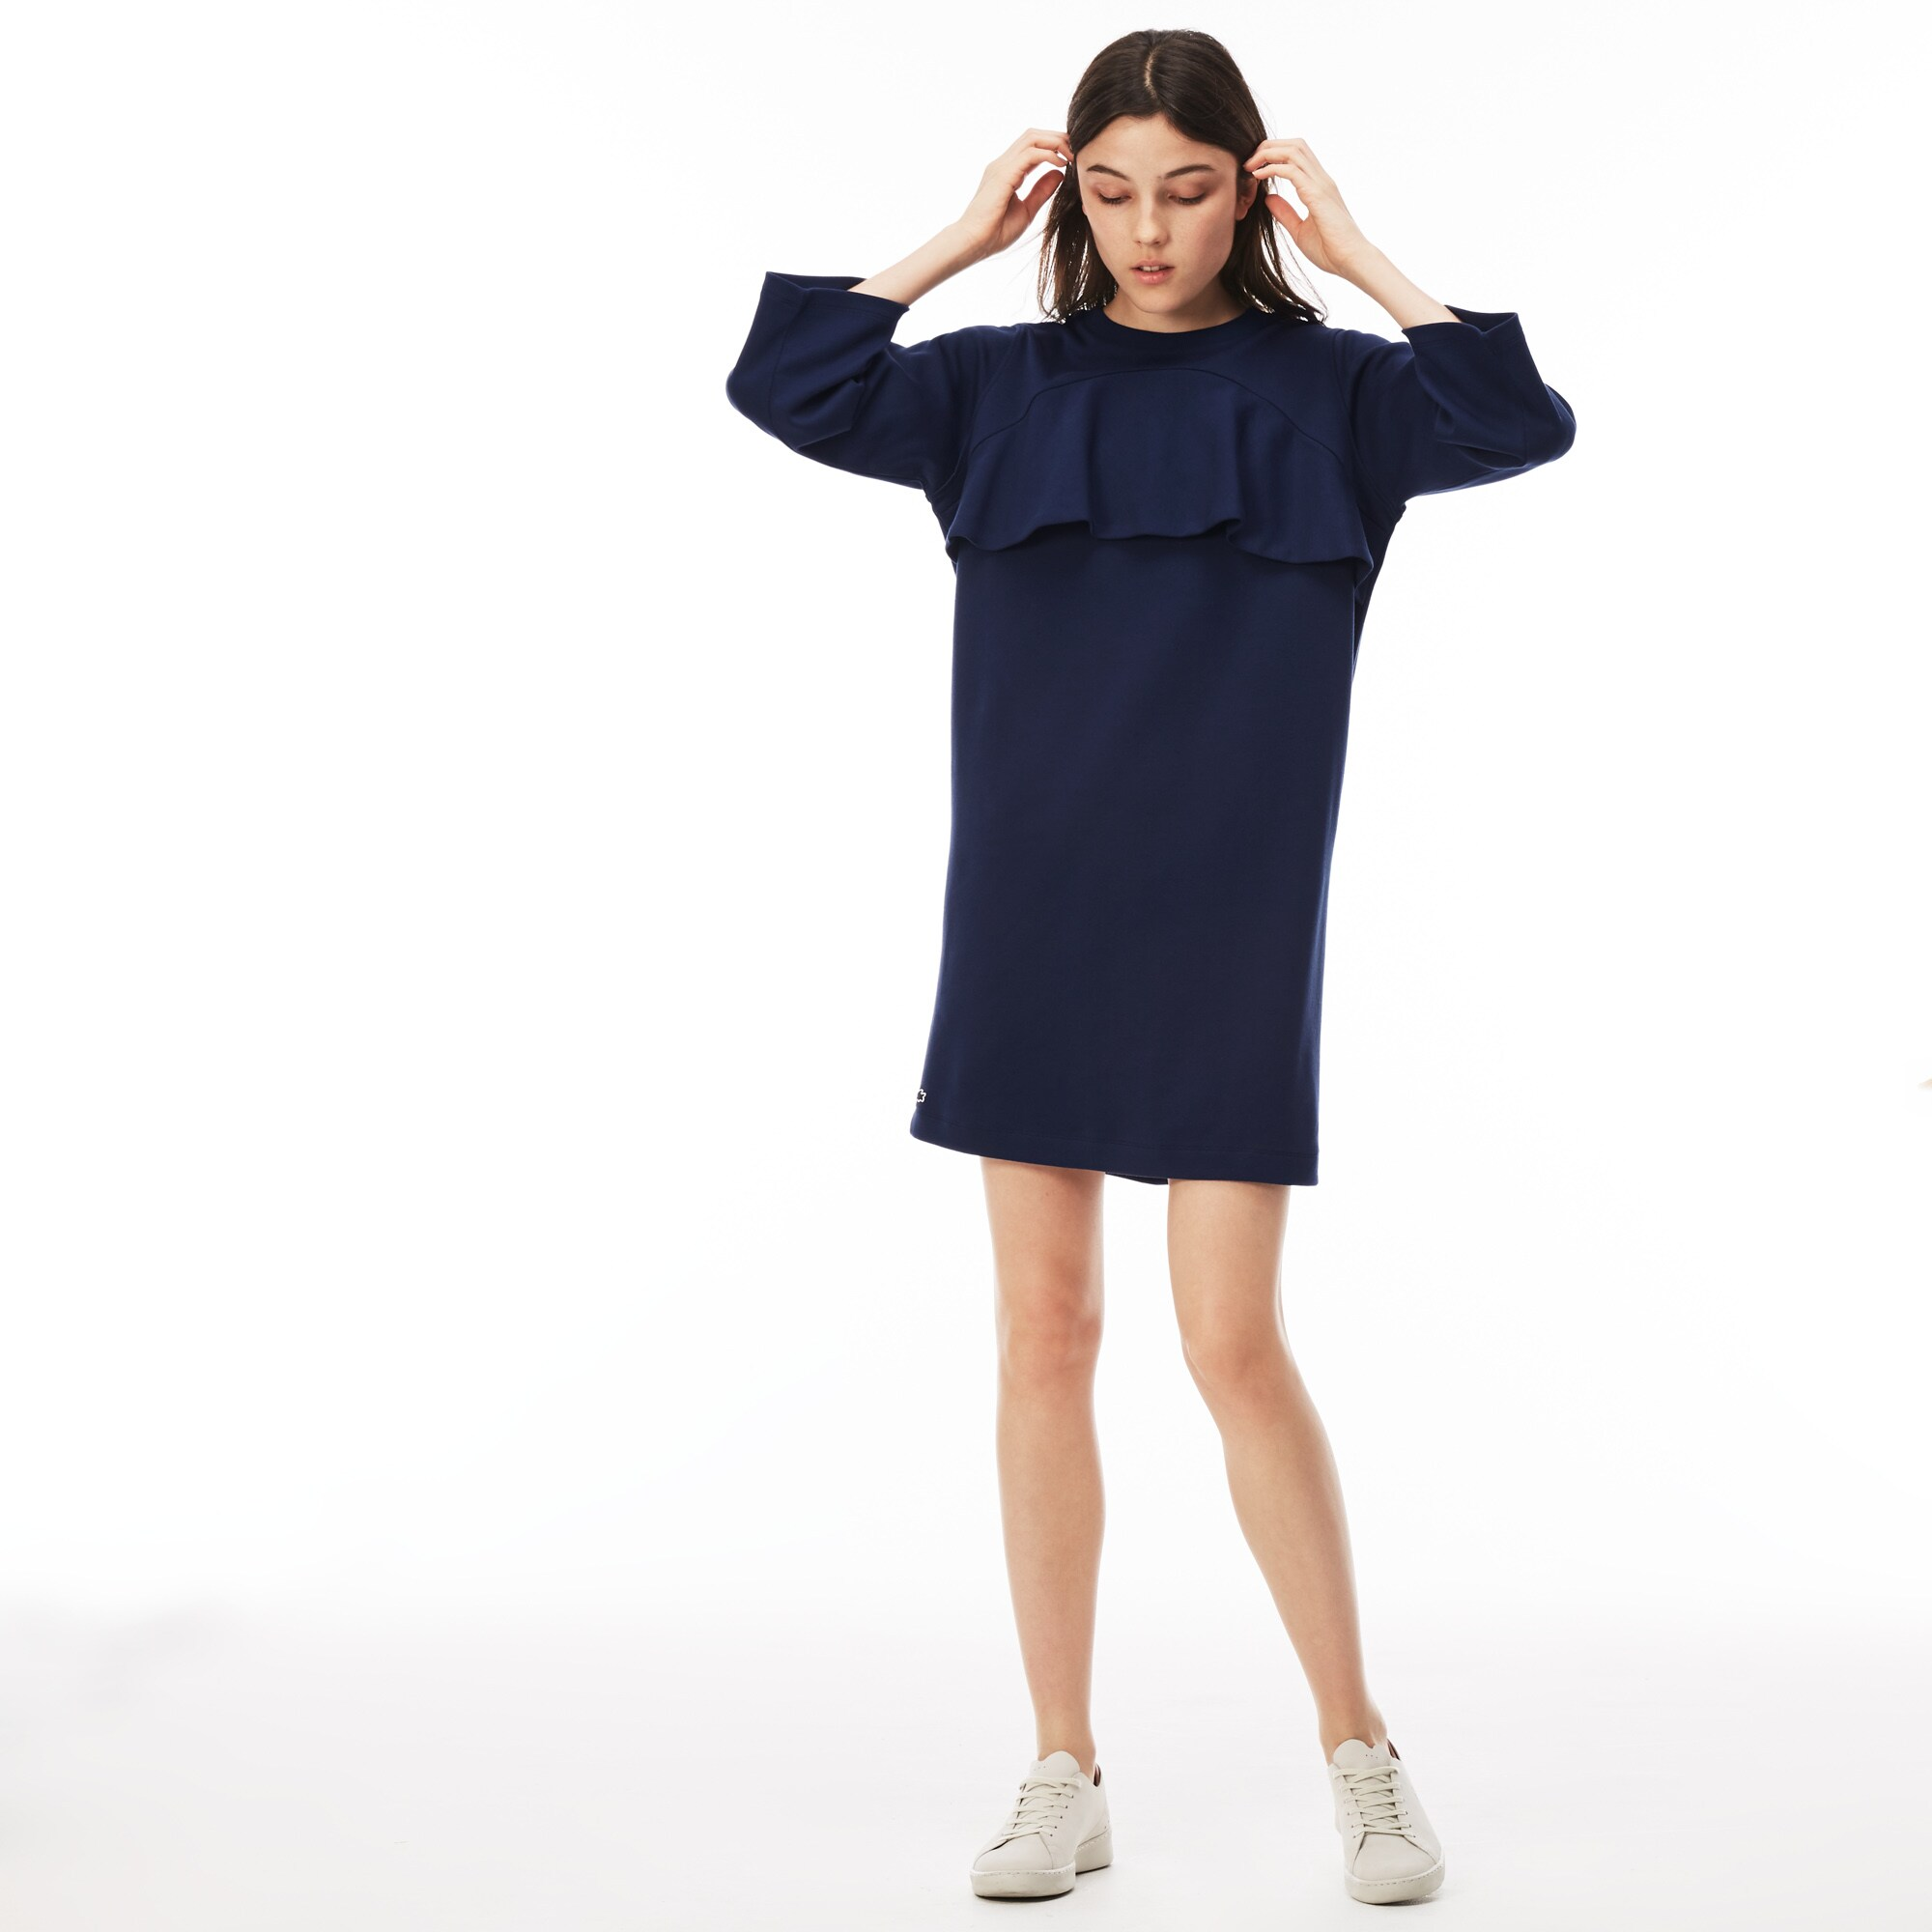 Damen-Sweatshirtkleid aus Interlock mit Volants LACOSTE L!VE